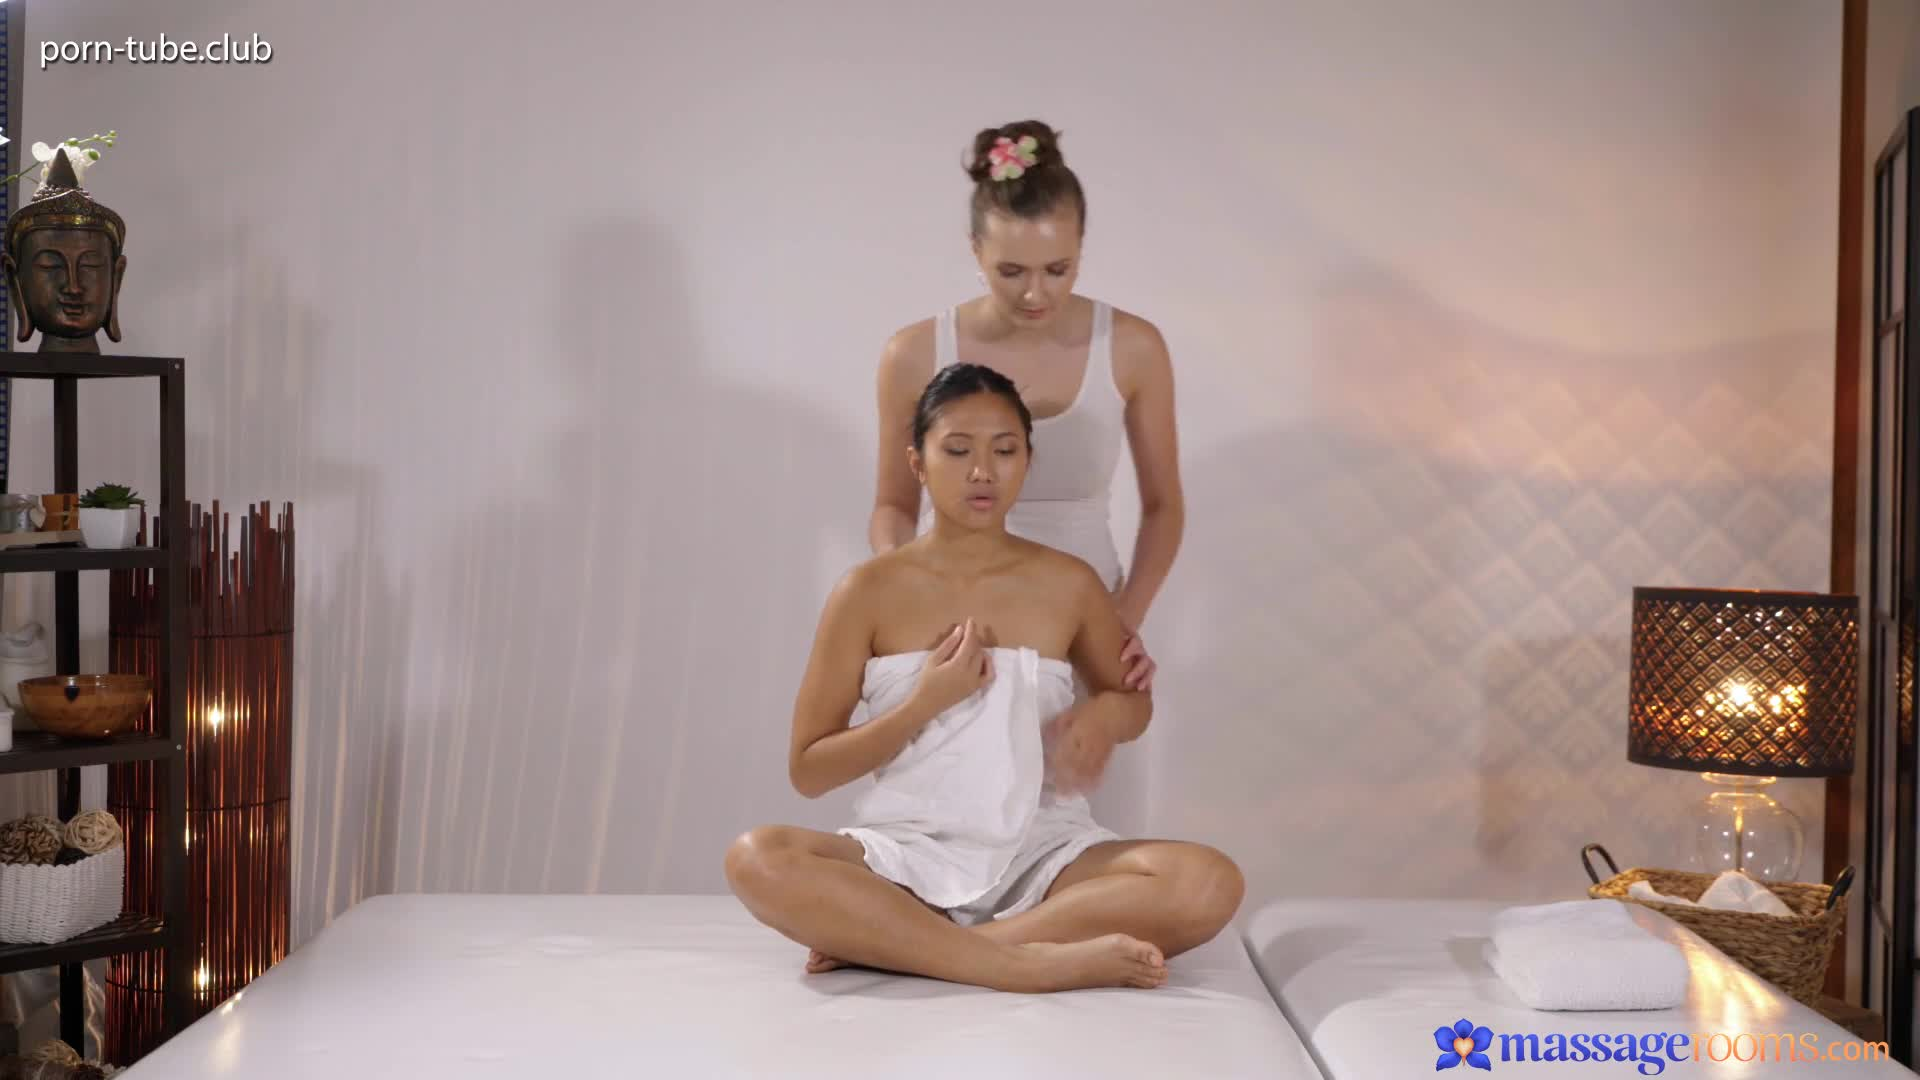 MassageRooms 19.10.26 Asian Teen May Thai And Stacy Cruz